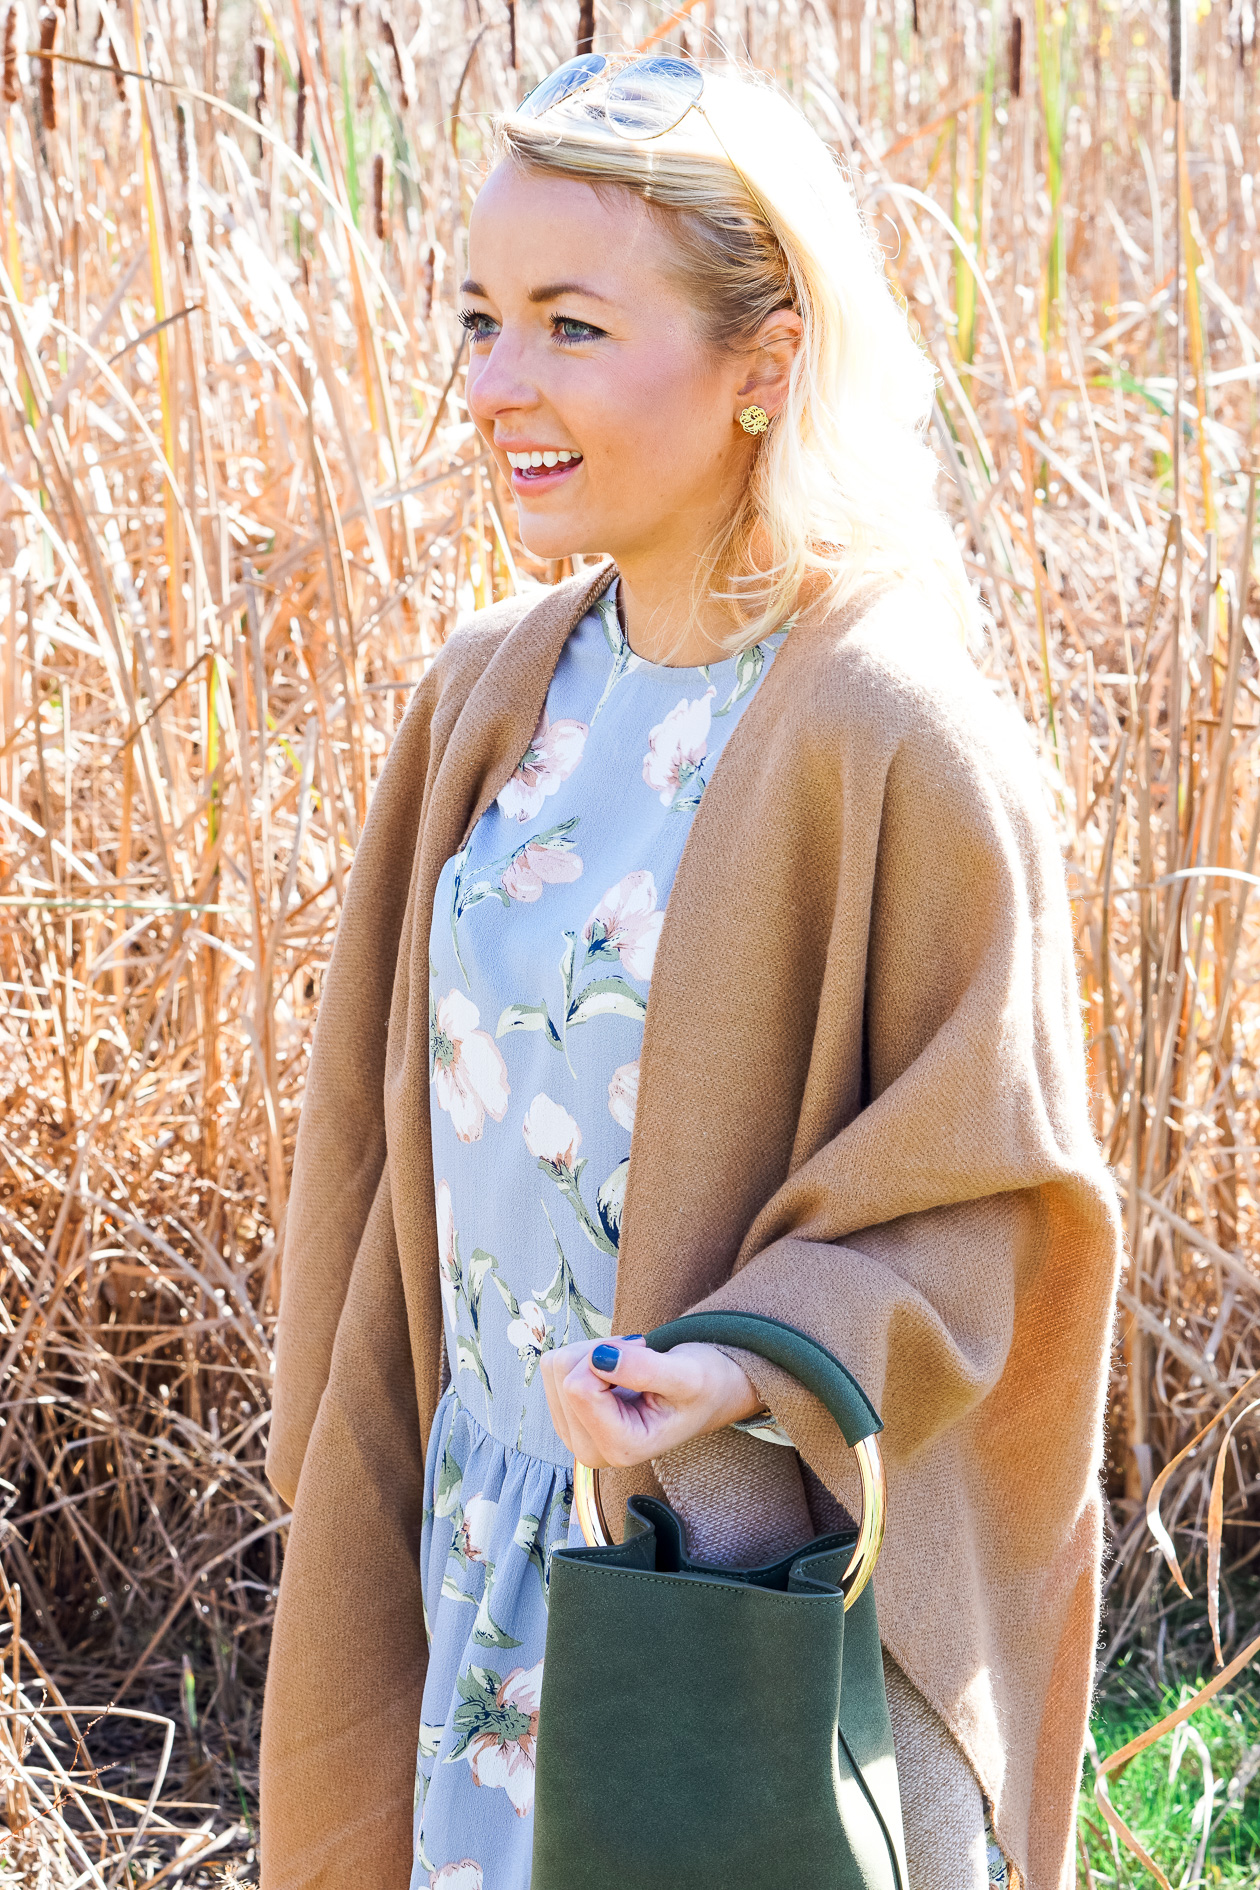 Camel tassel poncho and blue floral dress for Thanksgiving outfit